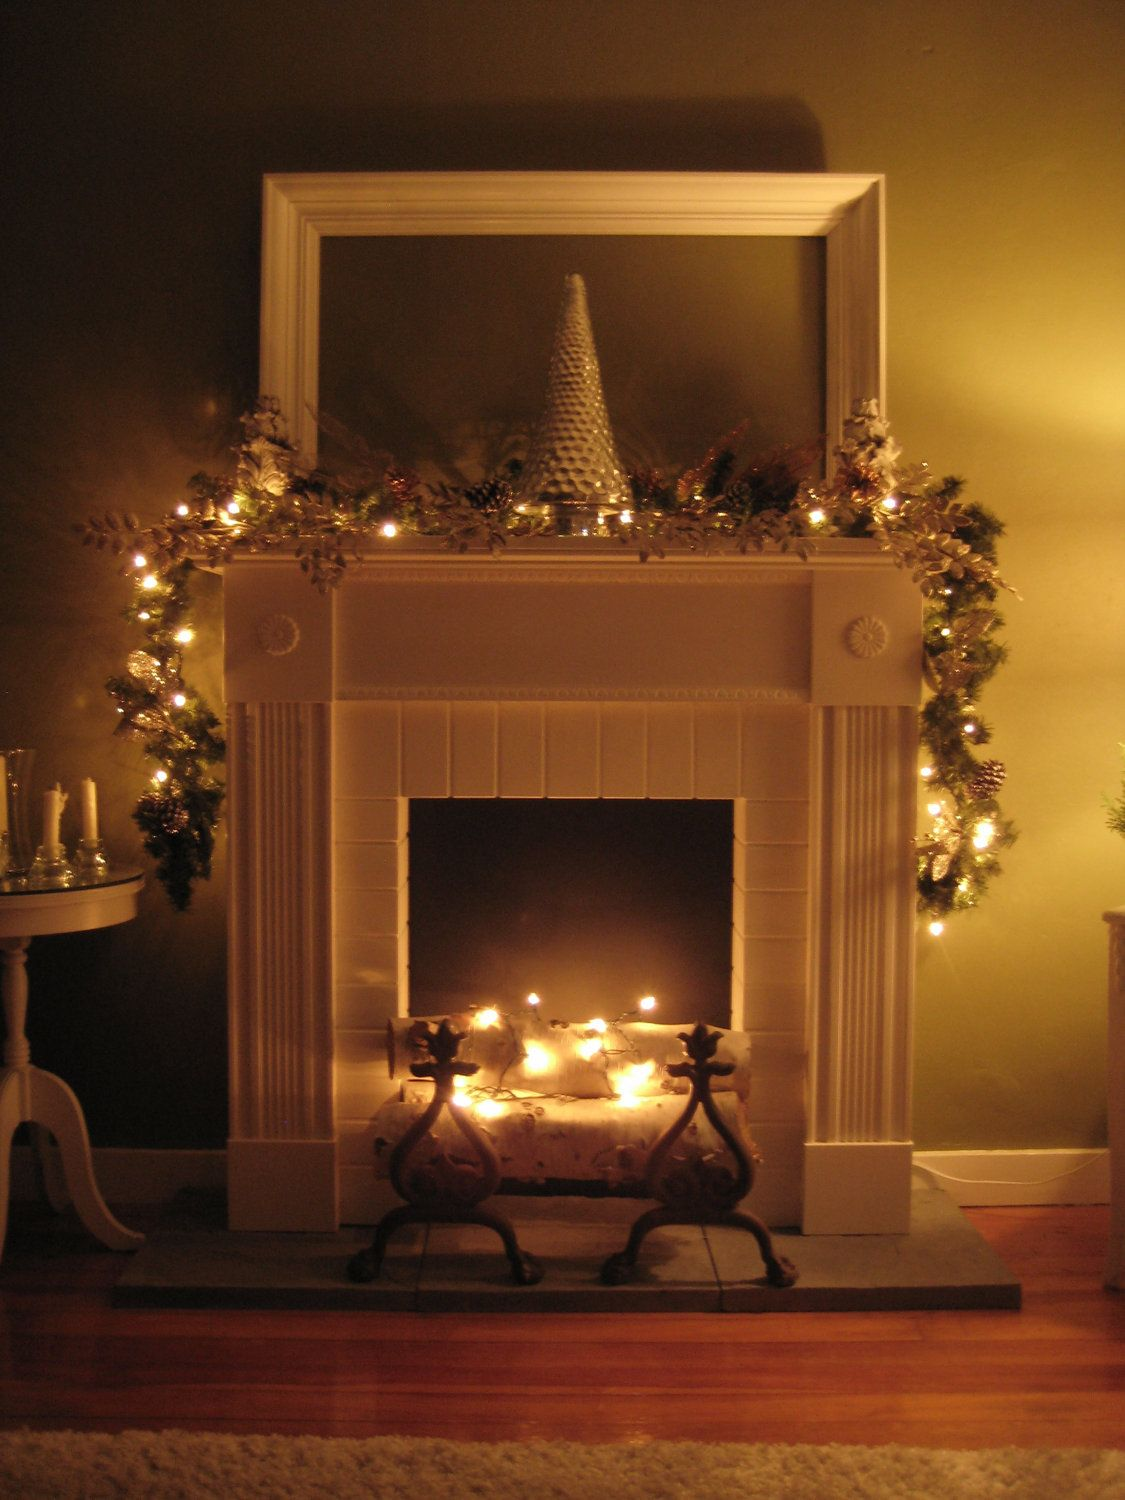 Diy Faux Fireplace With Candles Makes Room Warmer And Cozy Perfect Decoration For Christmas Time It I Faux Fireplace Diy Faux Fireplace Faux Fireplace Mantels